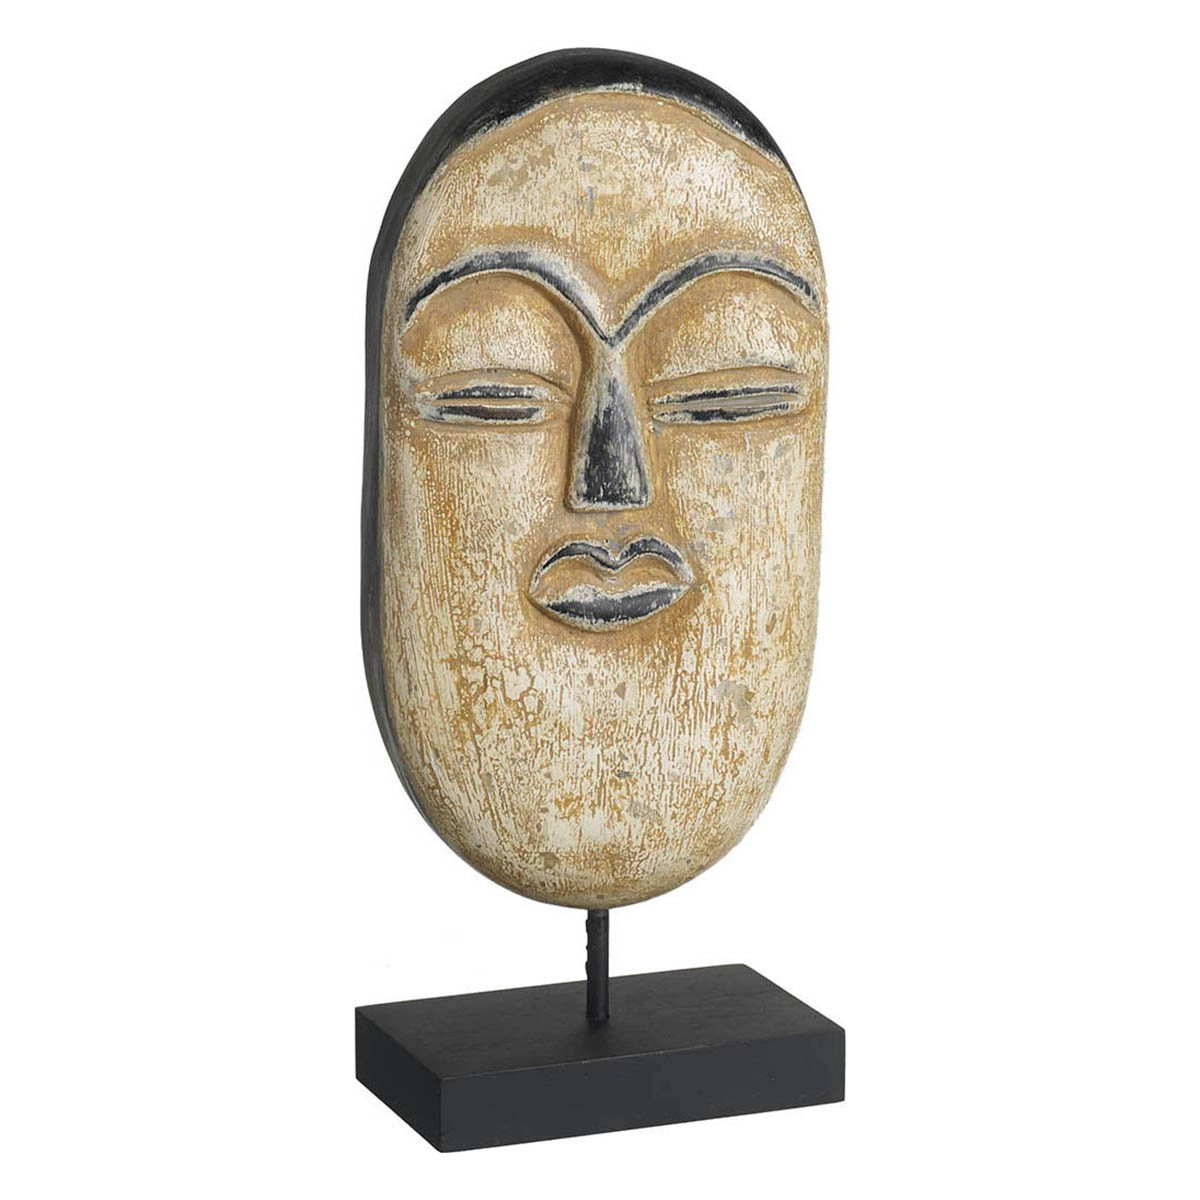 Mitsuki Mango Wood Mask Sculpture on Stand